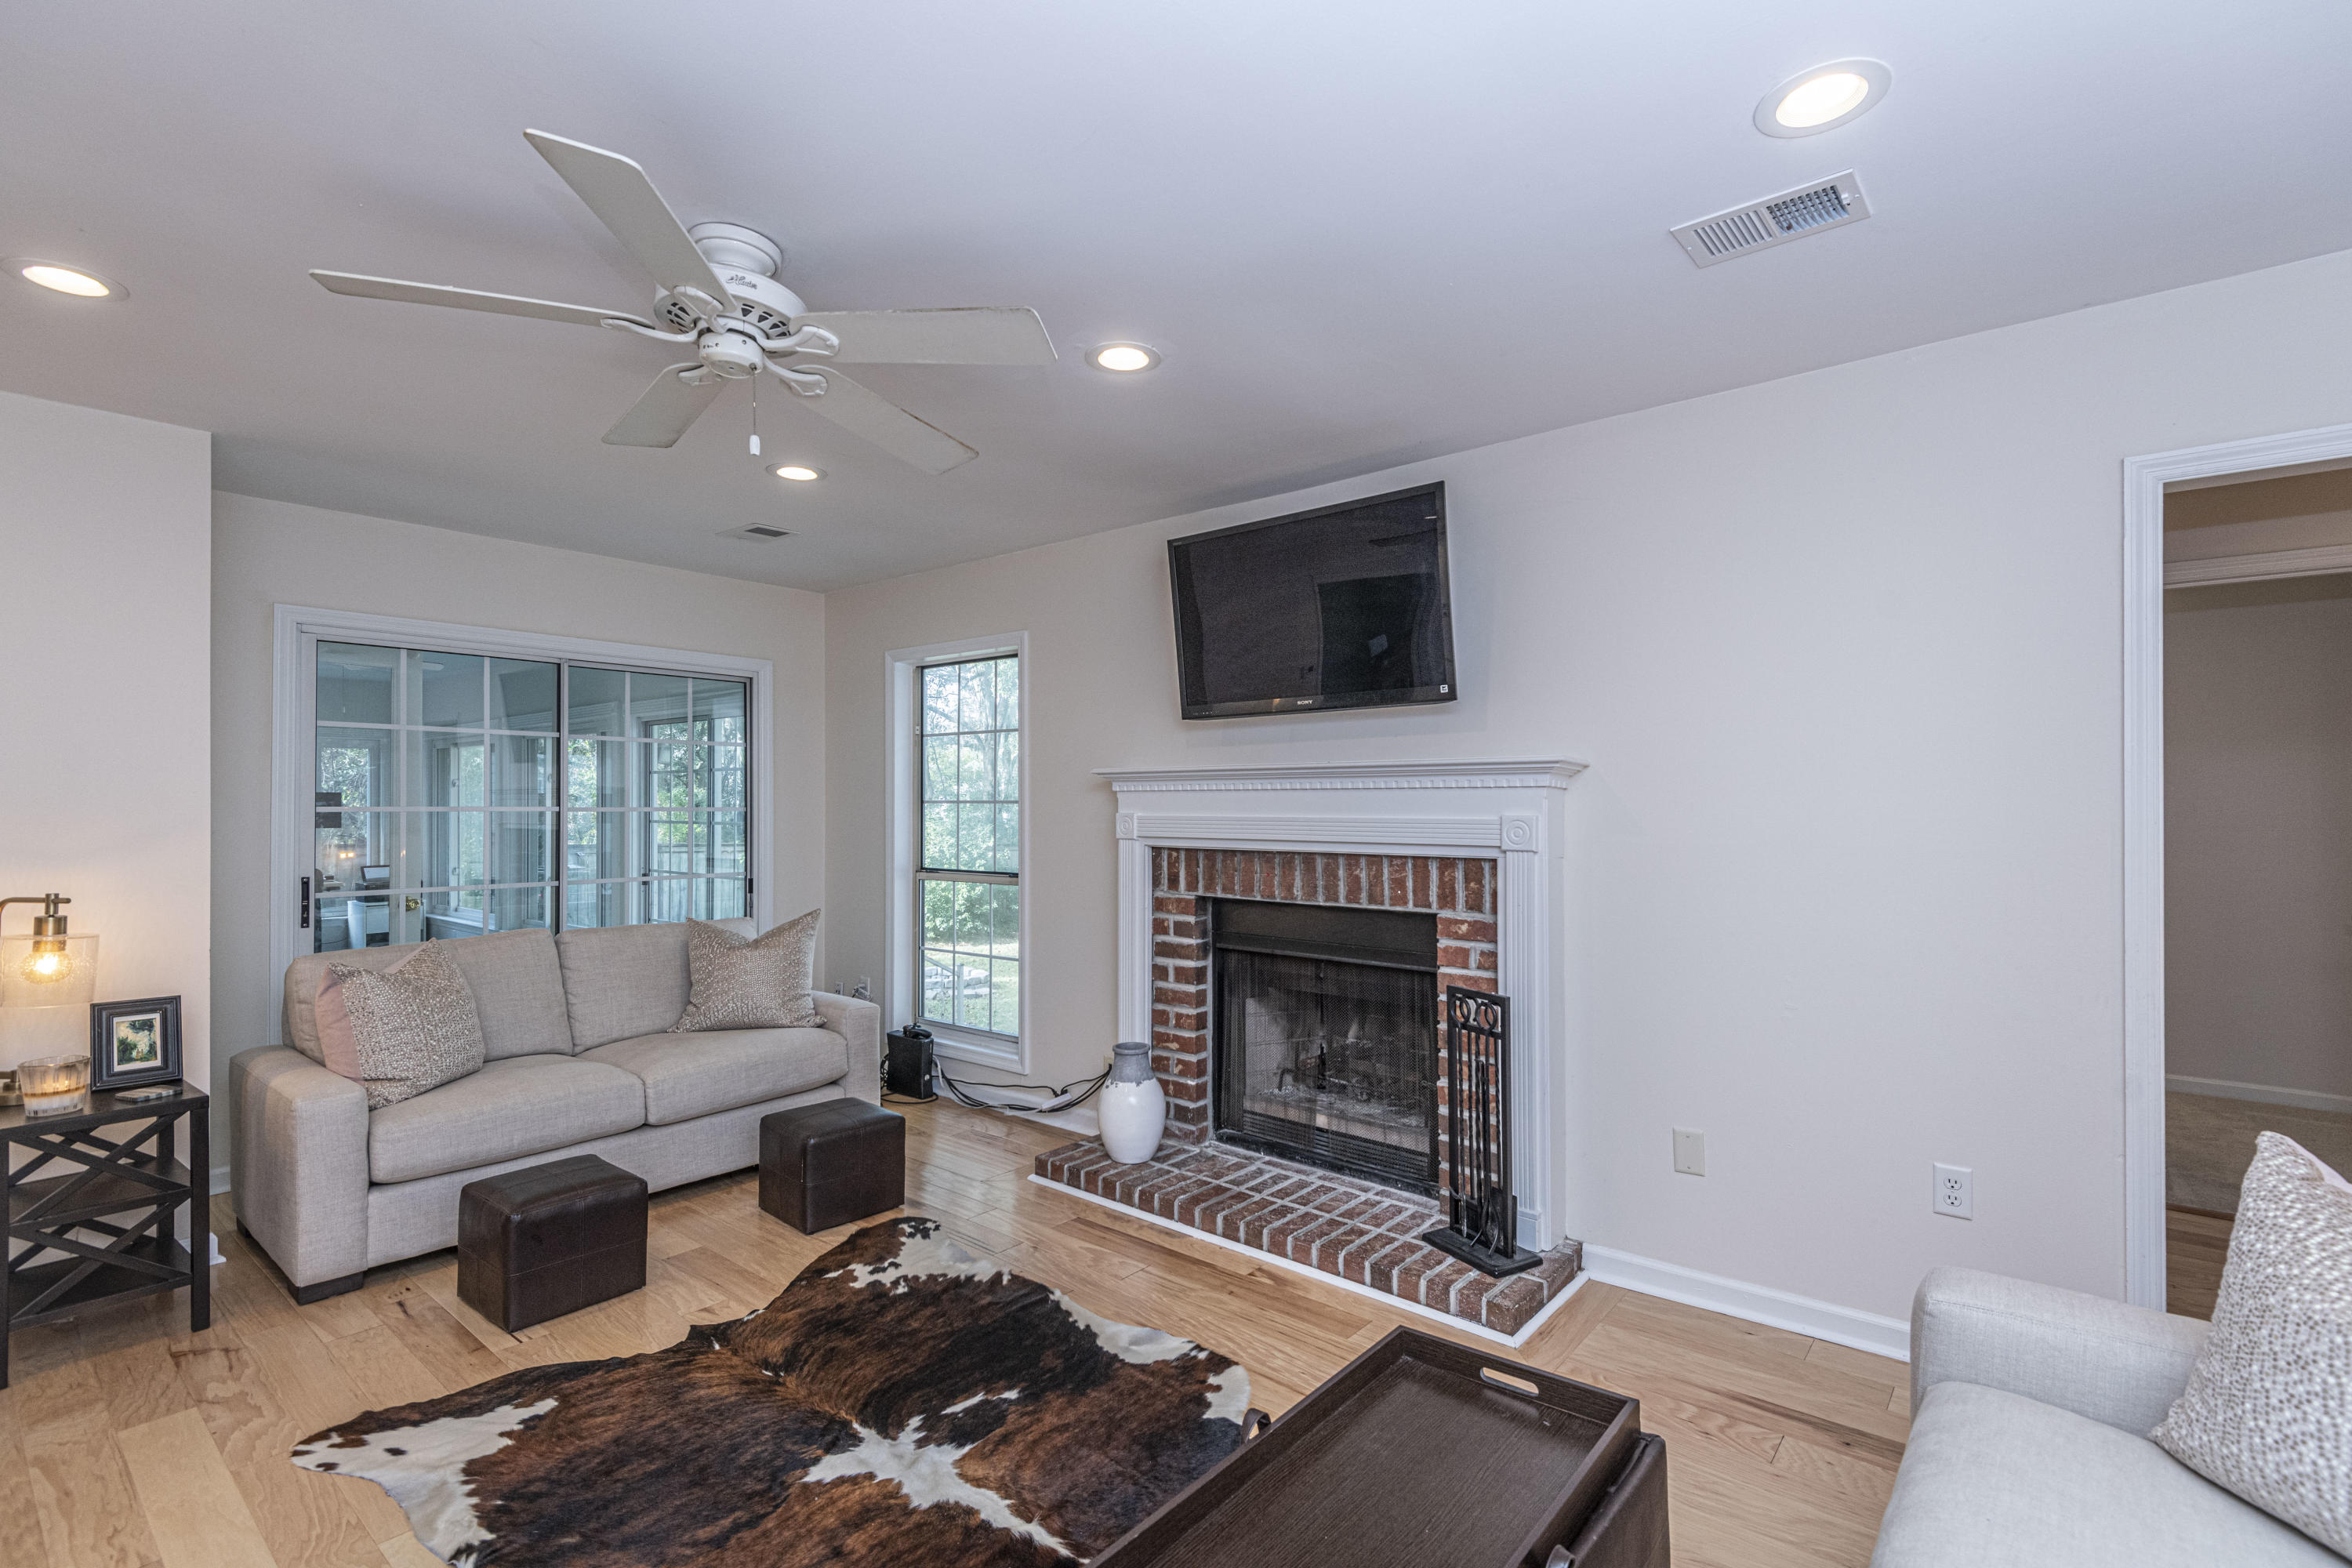 Coopers Pointe Homes For Sale - 1582 Hatteras Sound, Mount Pleasant, SC - 0